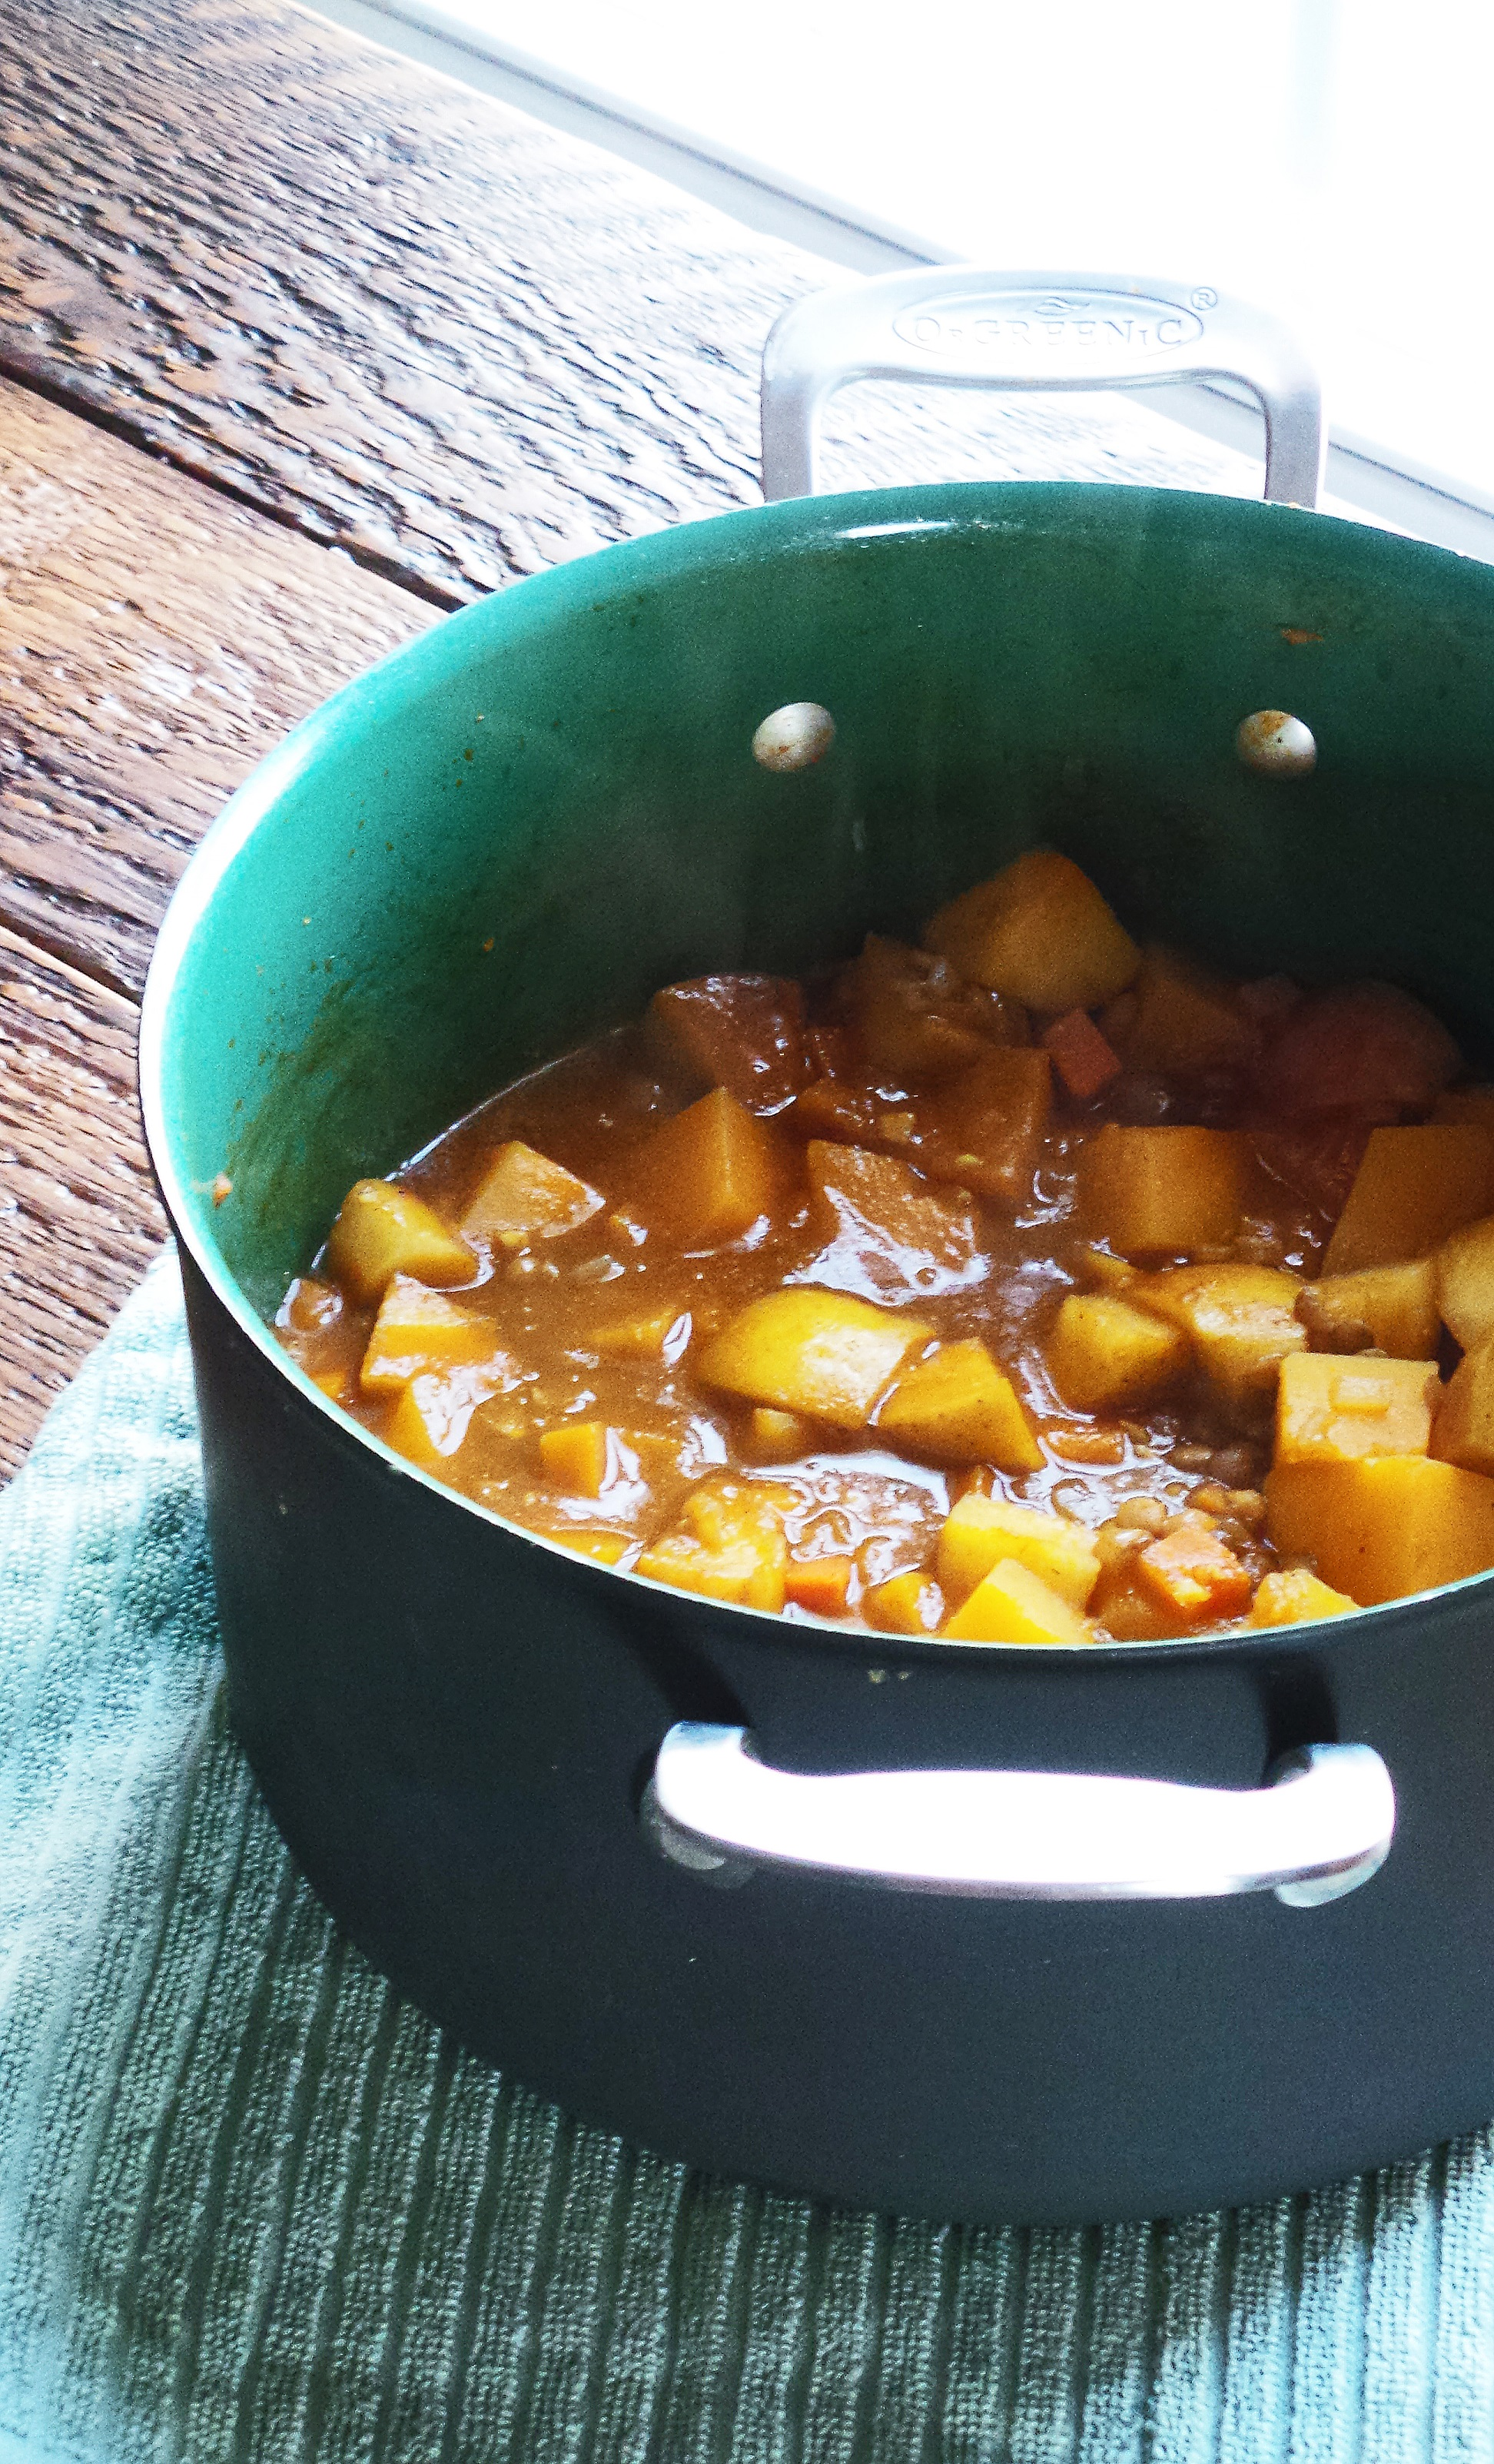 Curried Butternut Squash & Lentil Stew